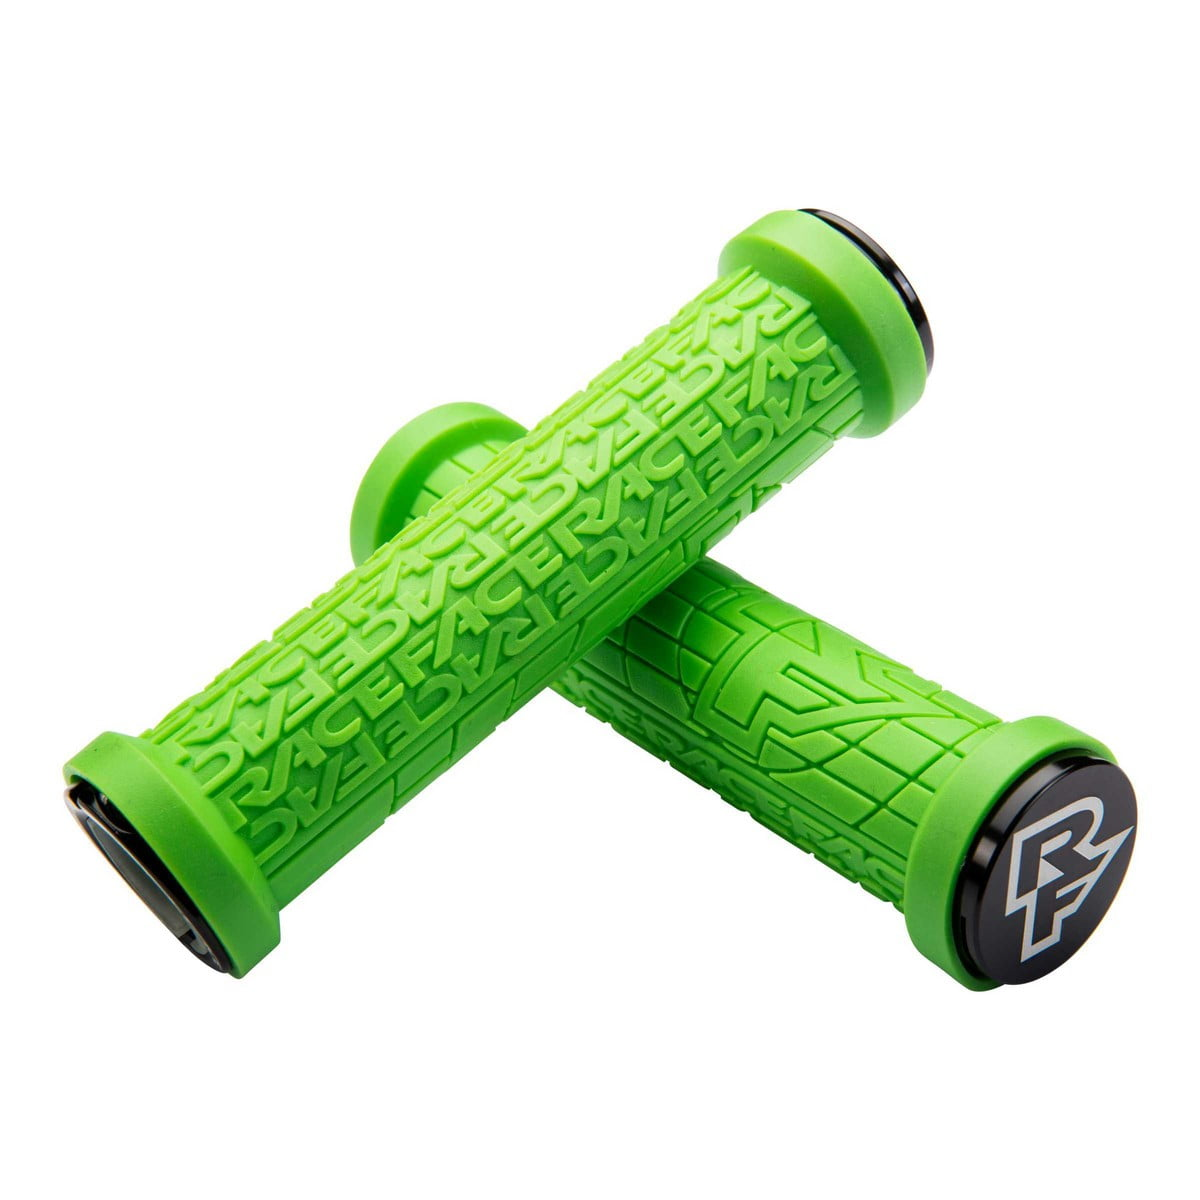 fuller_2017_Grip_Grippler_LockOn_Green_30mm_detail